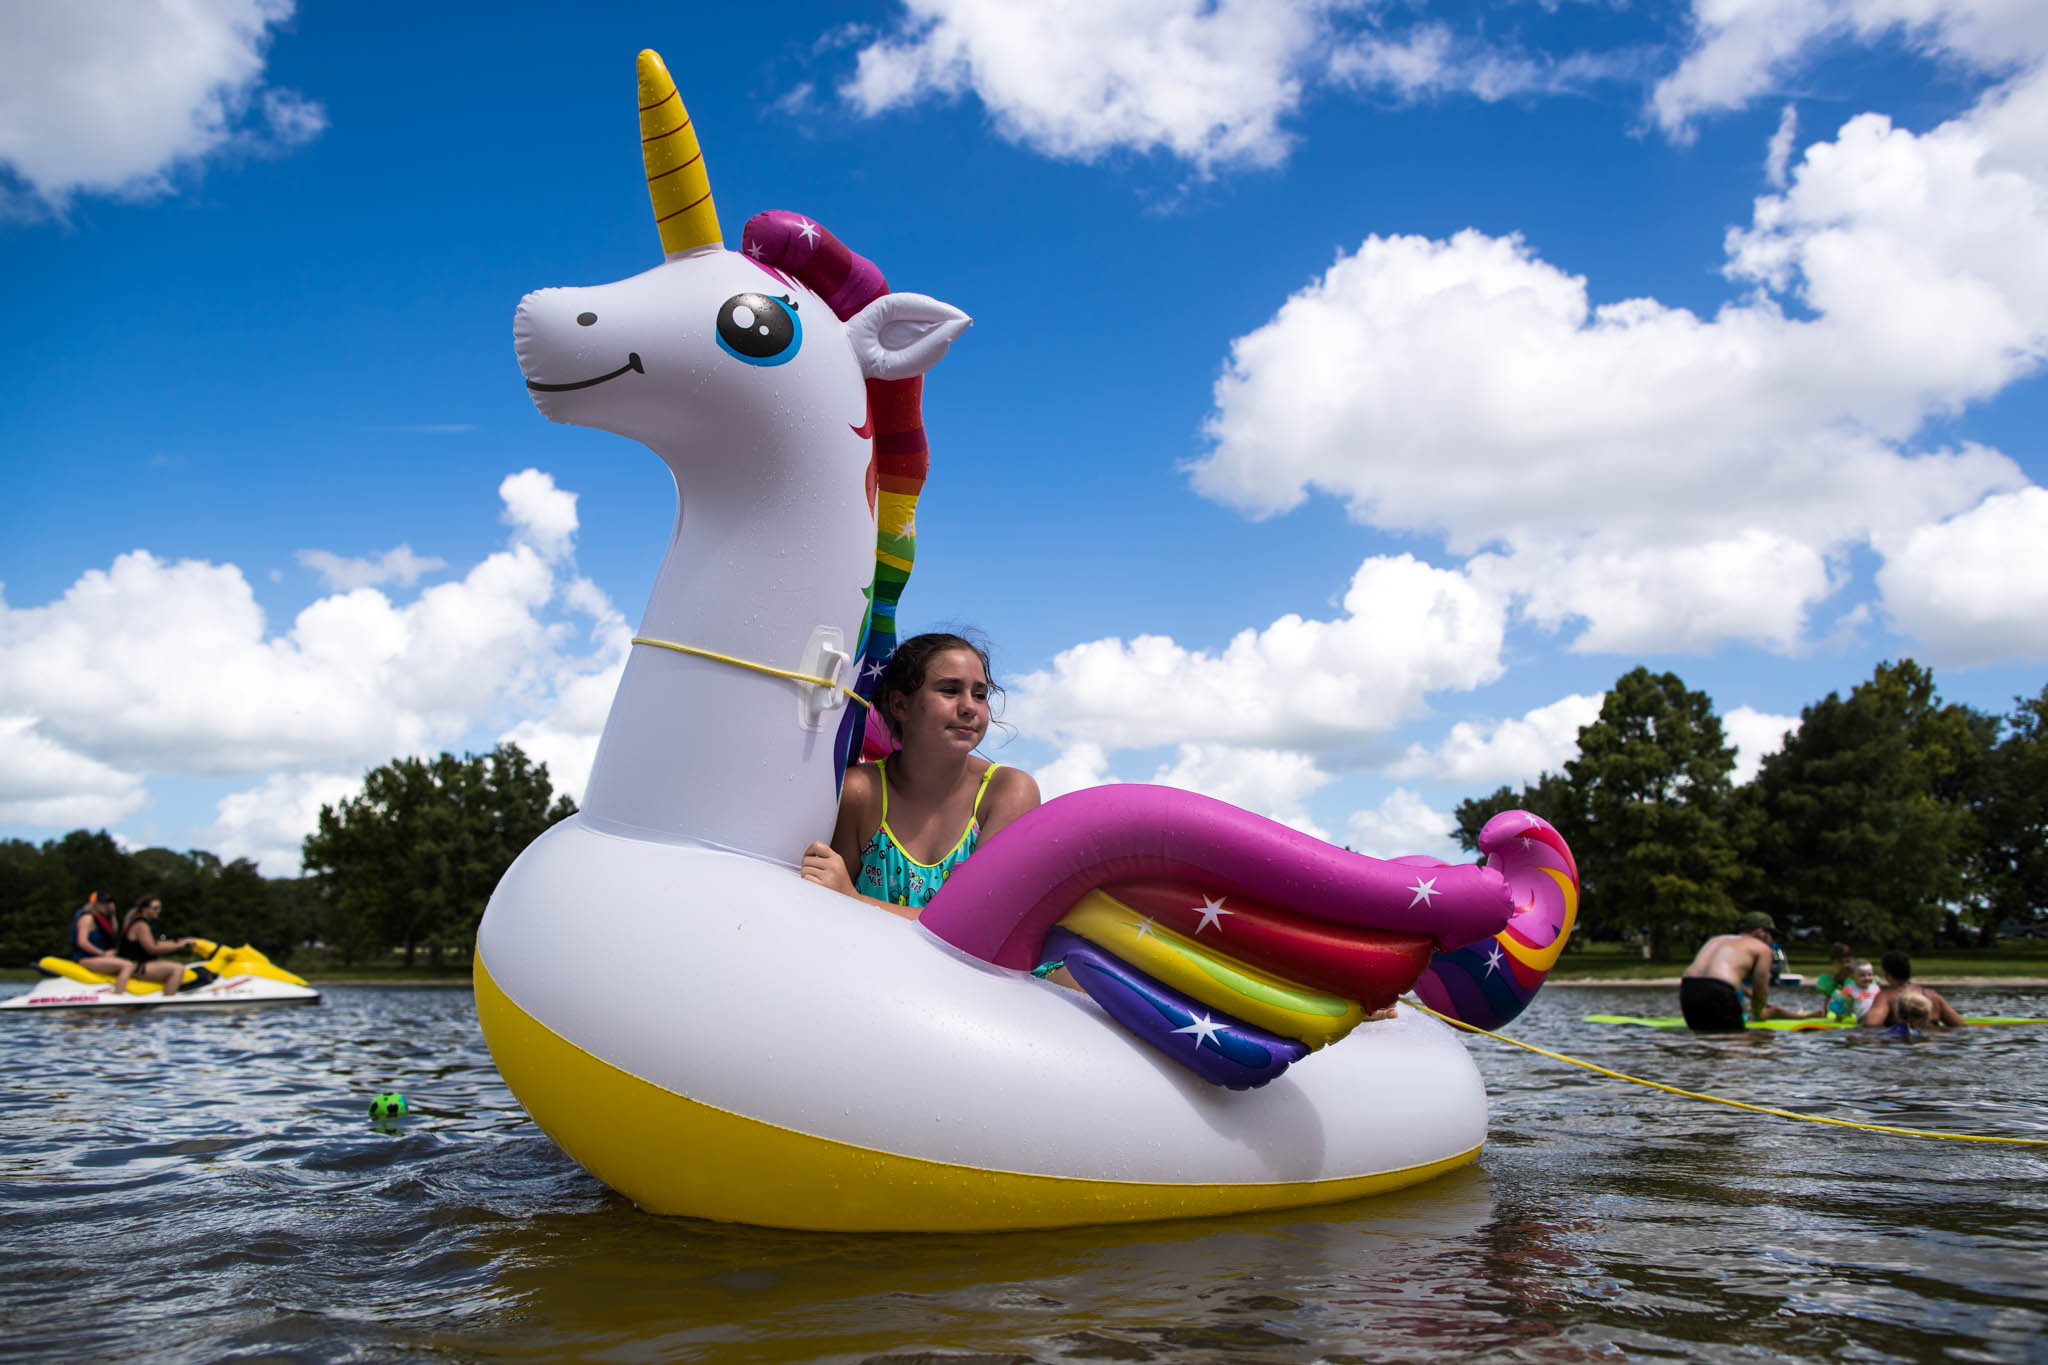 Dallas Family Photographer, Lawren Rose Photography, takes an environemtal portrait of a young girl sitting on an inflatable unicorn